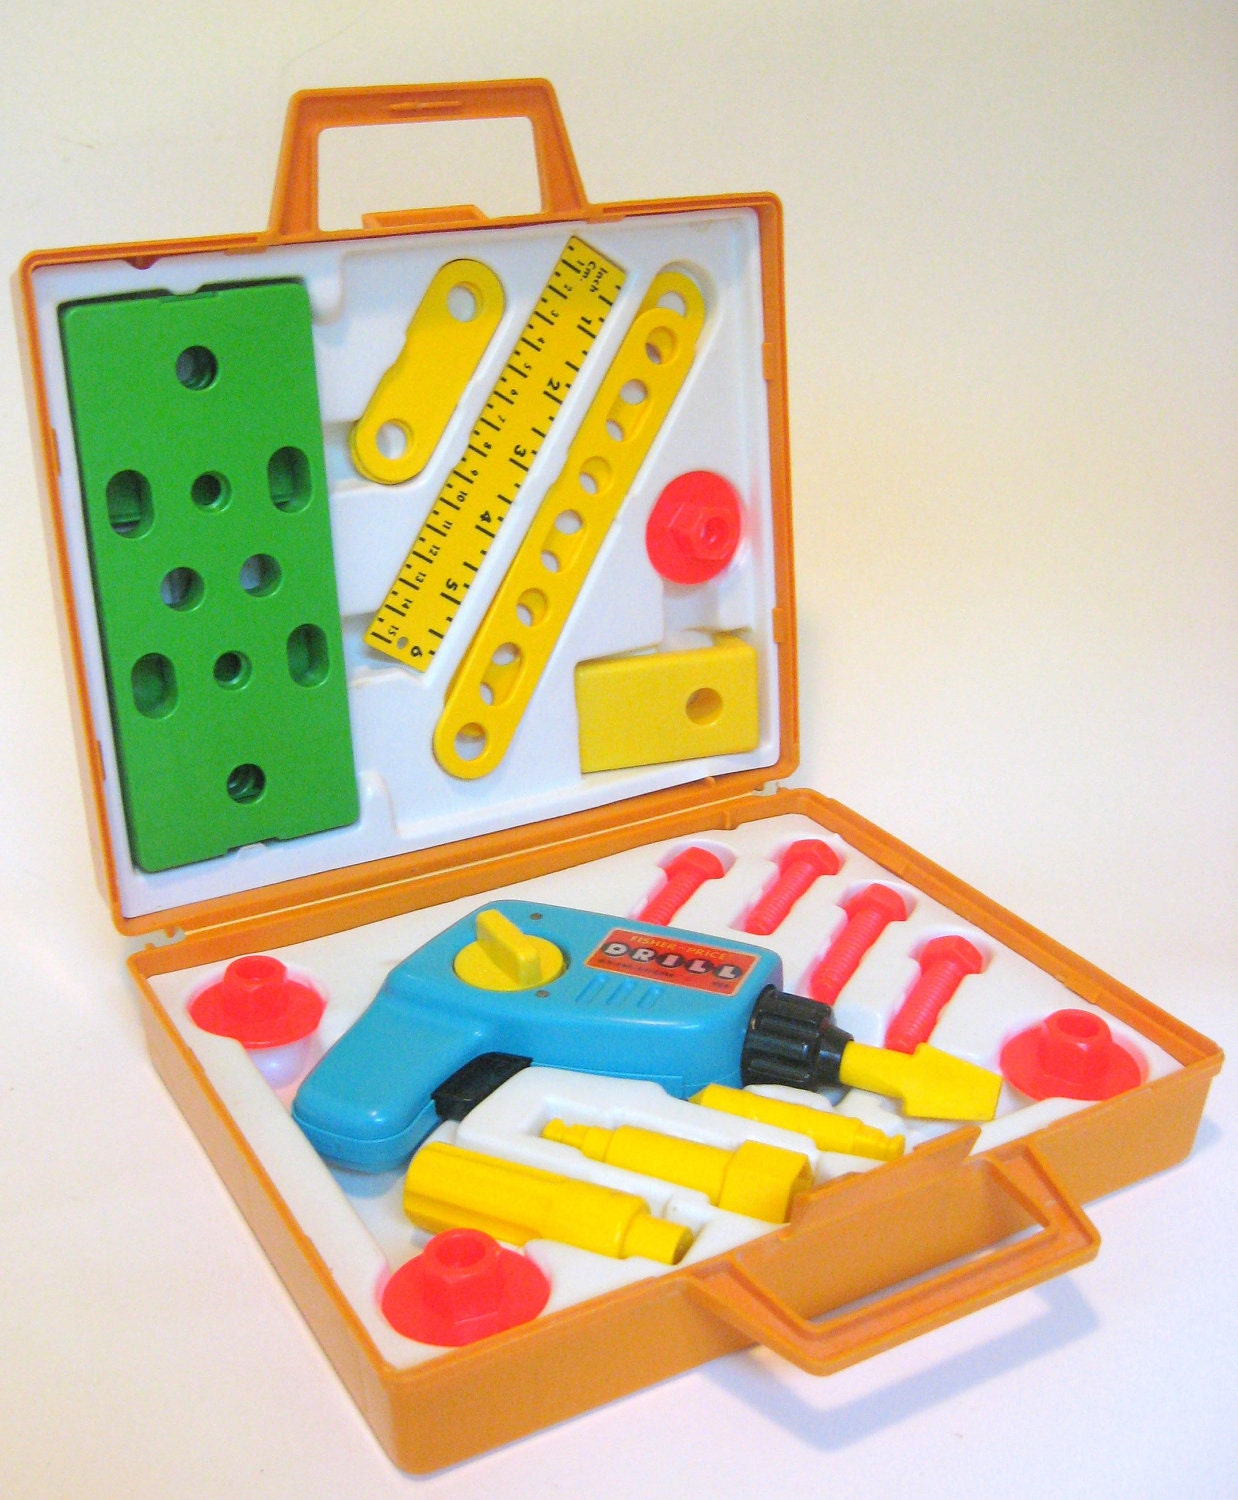 Pricing Tool: 1977 Fisher Price Tool Kit No 924 With Carrying Case Wind-Up